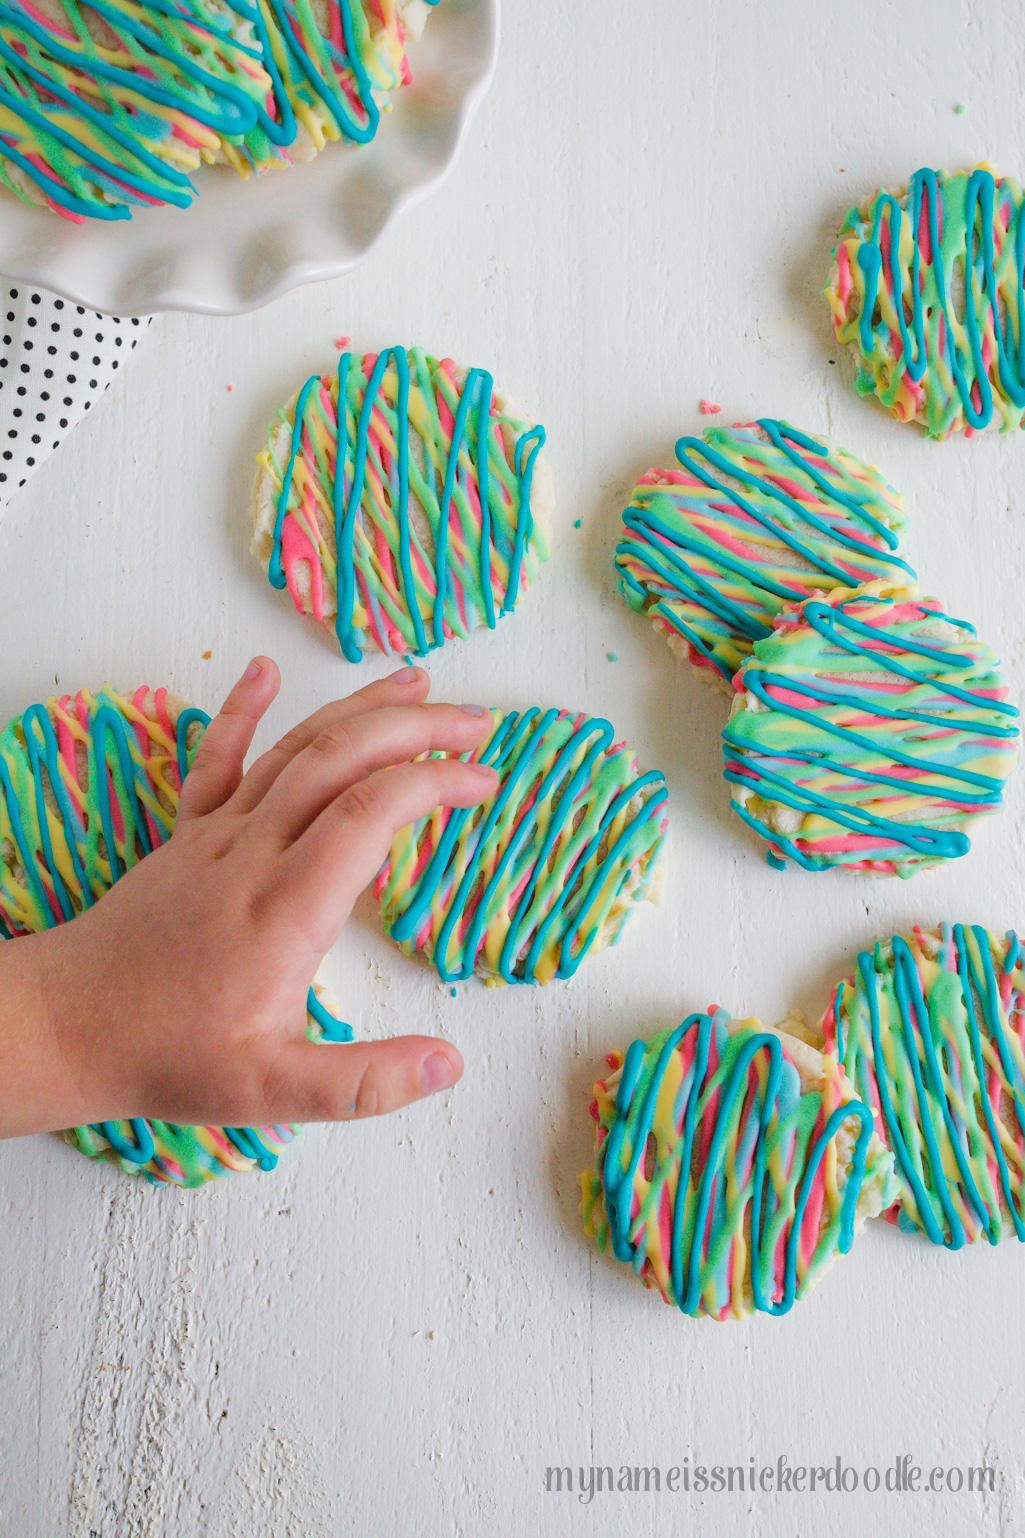 Colorful Sugar Cookies are a fun way to explore color and eat your food too. These delicious sugar cookies are made with an easy recipe that will keep you coming back for more. It will become your new go to sugar cookie recipe. #sugarcookies #cookierecipe #sugarcookierecipe #swigsugarcookierecipe